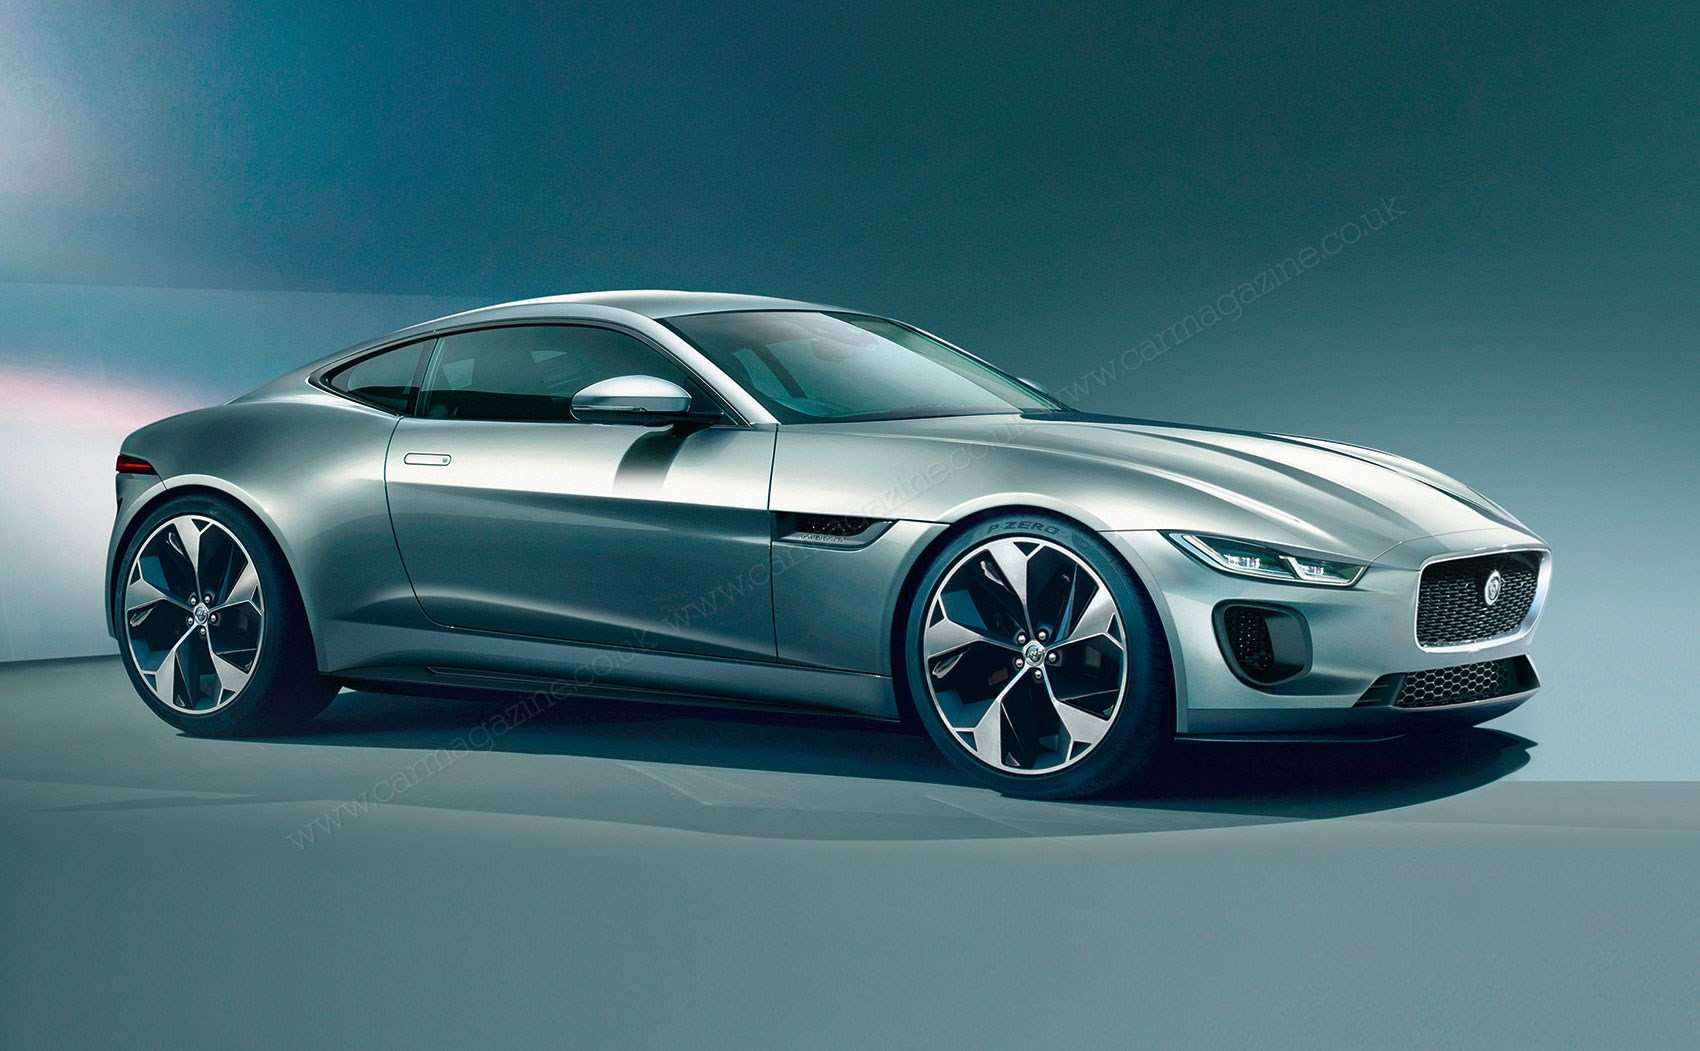 32 The Jaguar New Models 2020 Exterior And Interior